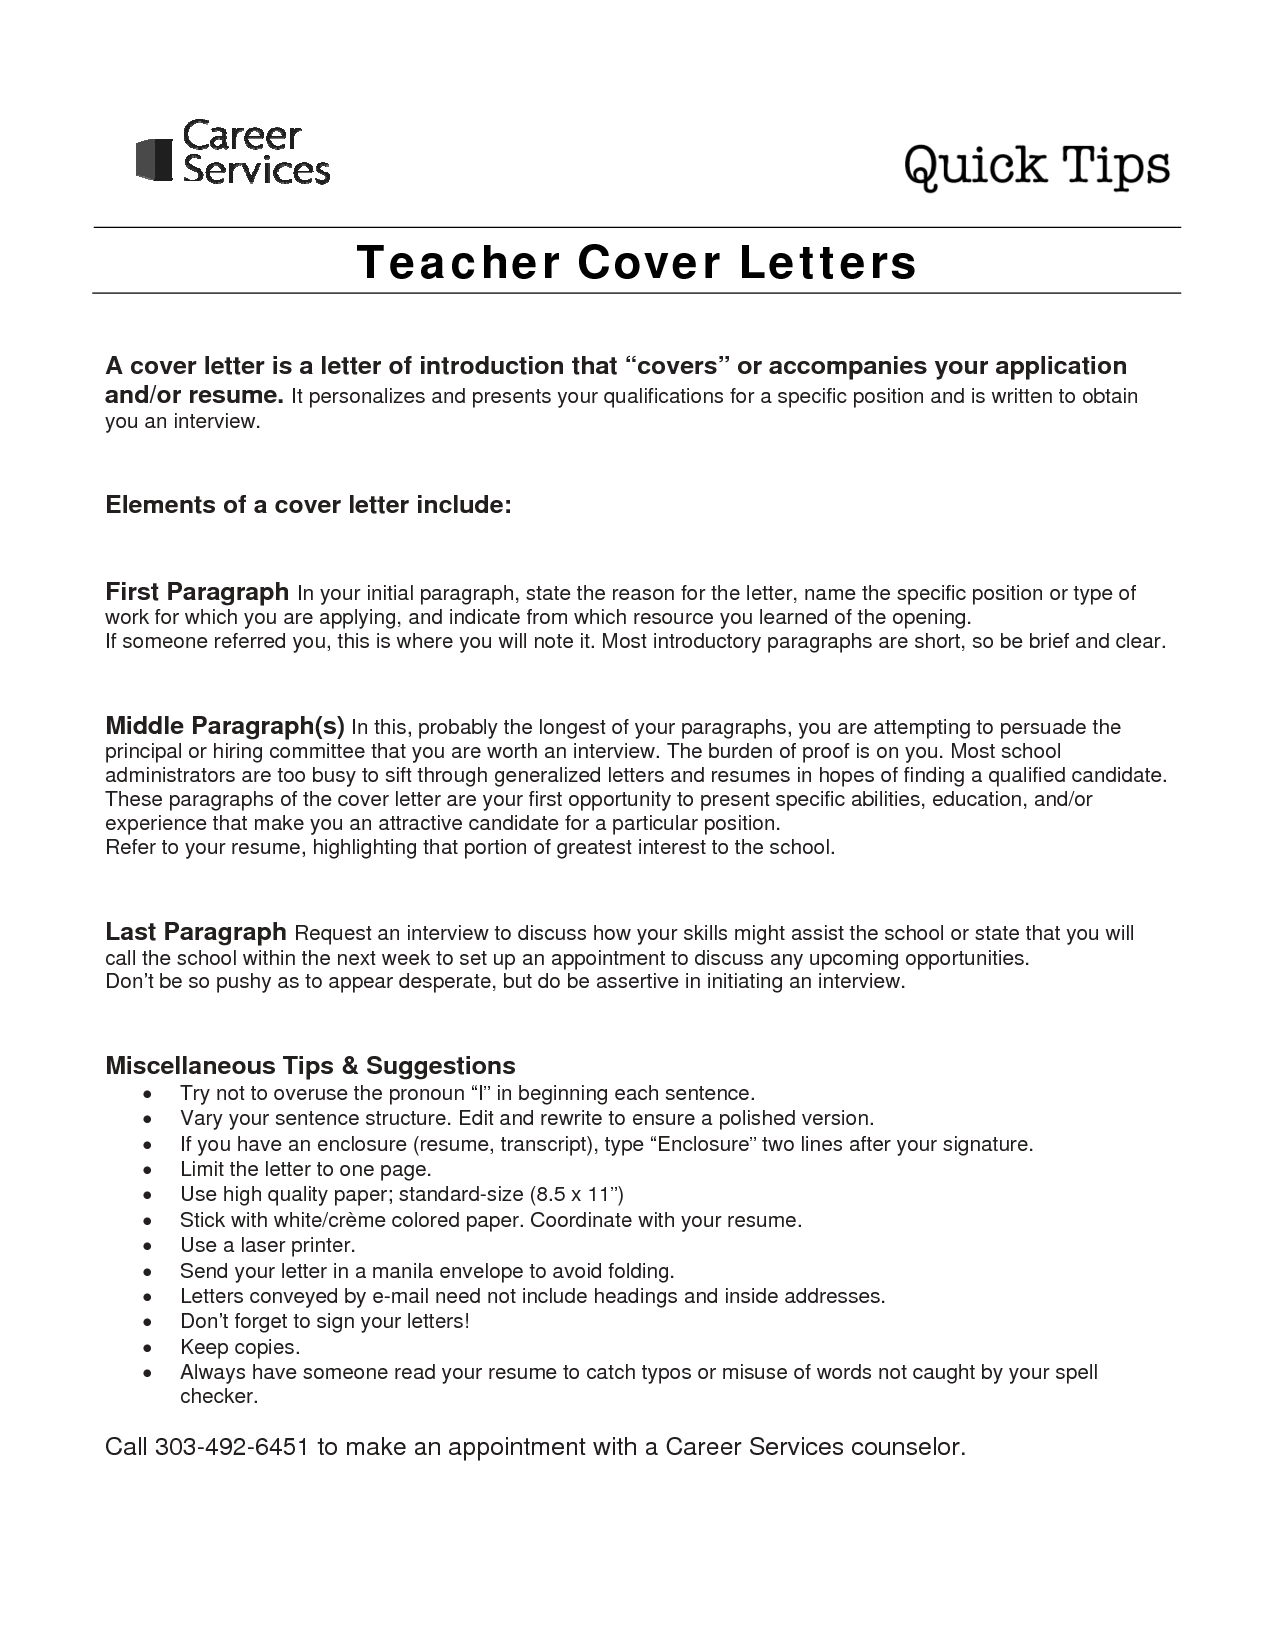 Teacher Cover Letter And Resume Pinririn Nazza On Free Resume Sample  Pinterest  Cover .